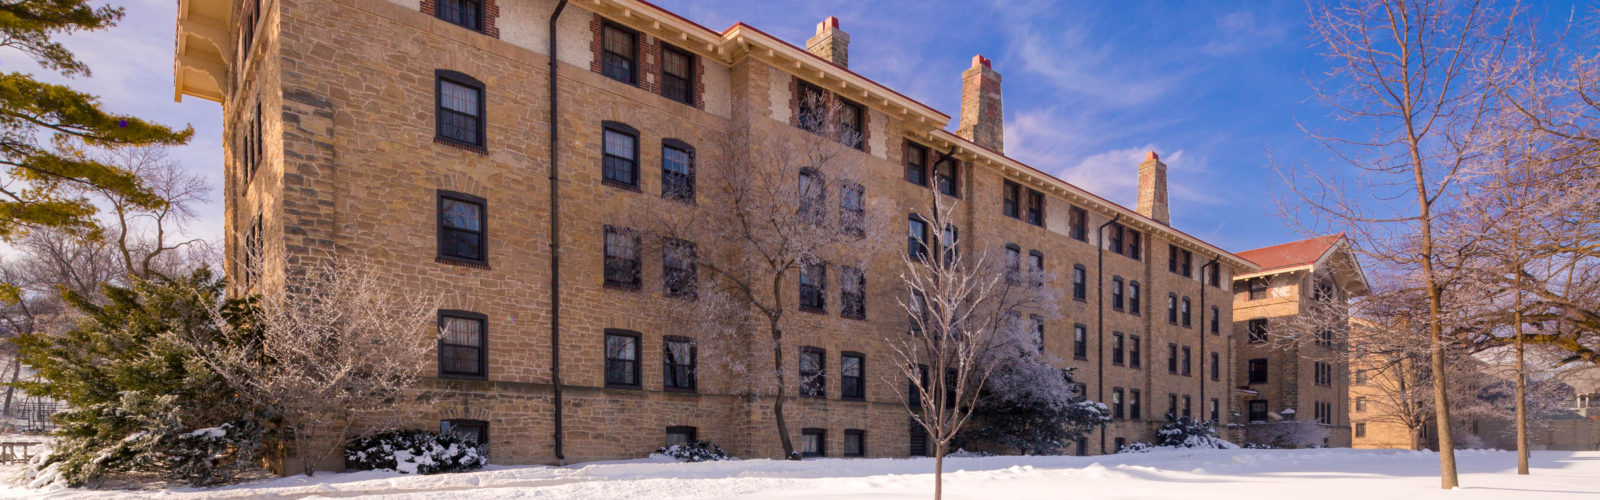 Tripp Residence Hall's exterior during winter